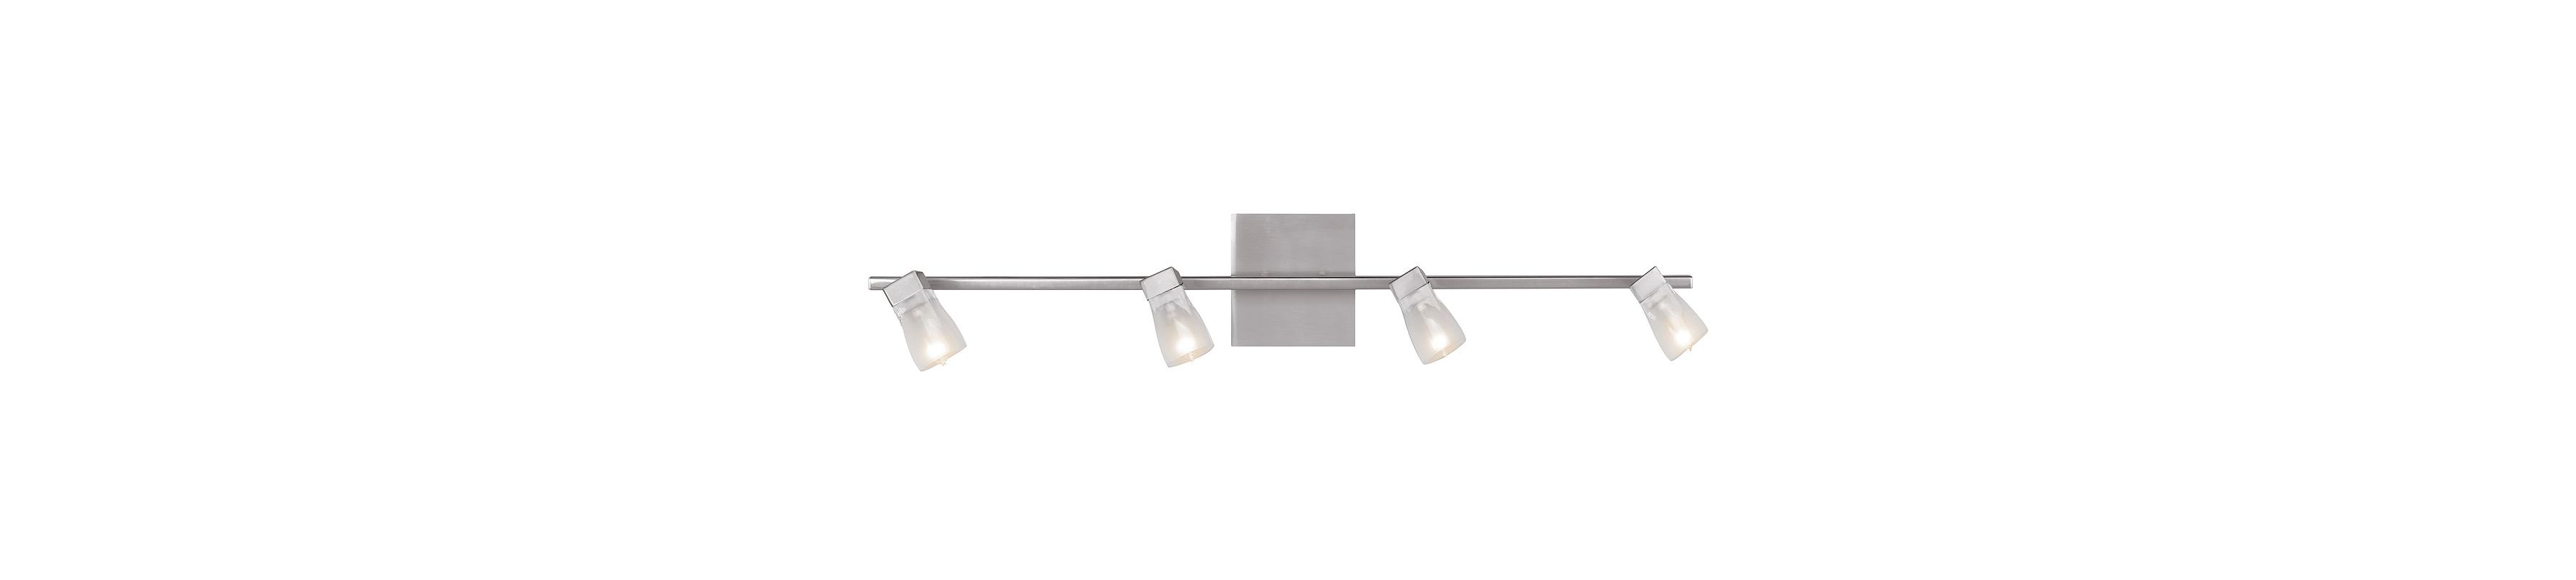 Access Lighting 52144-BS/FCL Steel Contemporary Ryan Wall Sconce Sale $78.00 ITEM: bci740322 ID#:52144-BS/FCL UPC: 641594076233 :